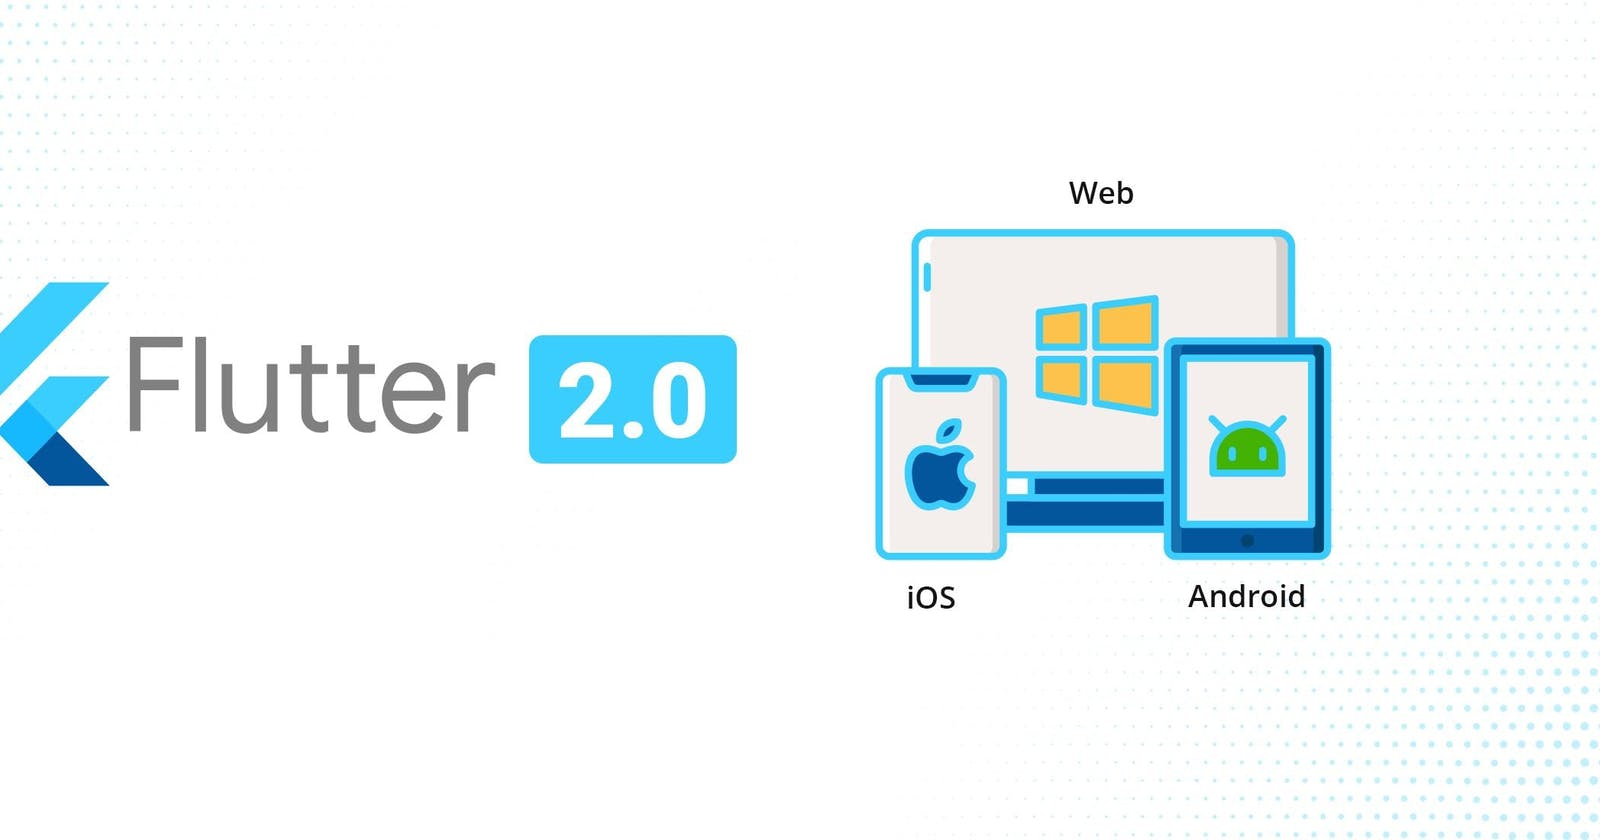 Flutter Web: Should I use it? (Part 3— Other considerations)